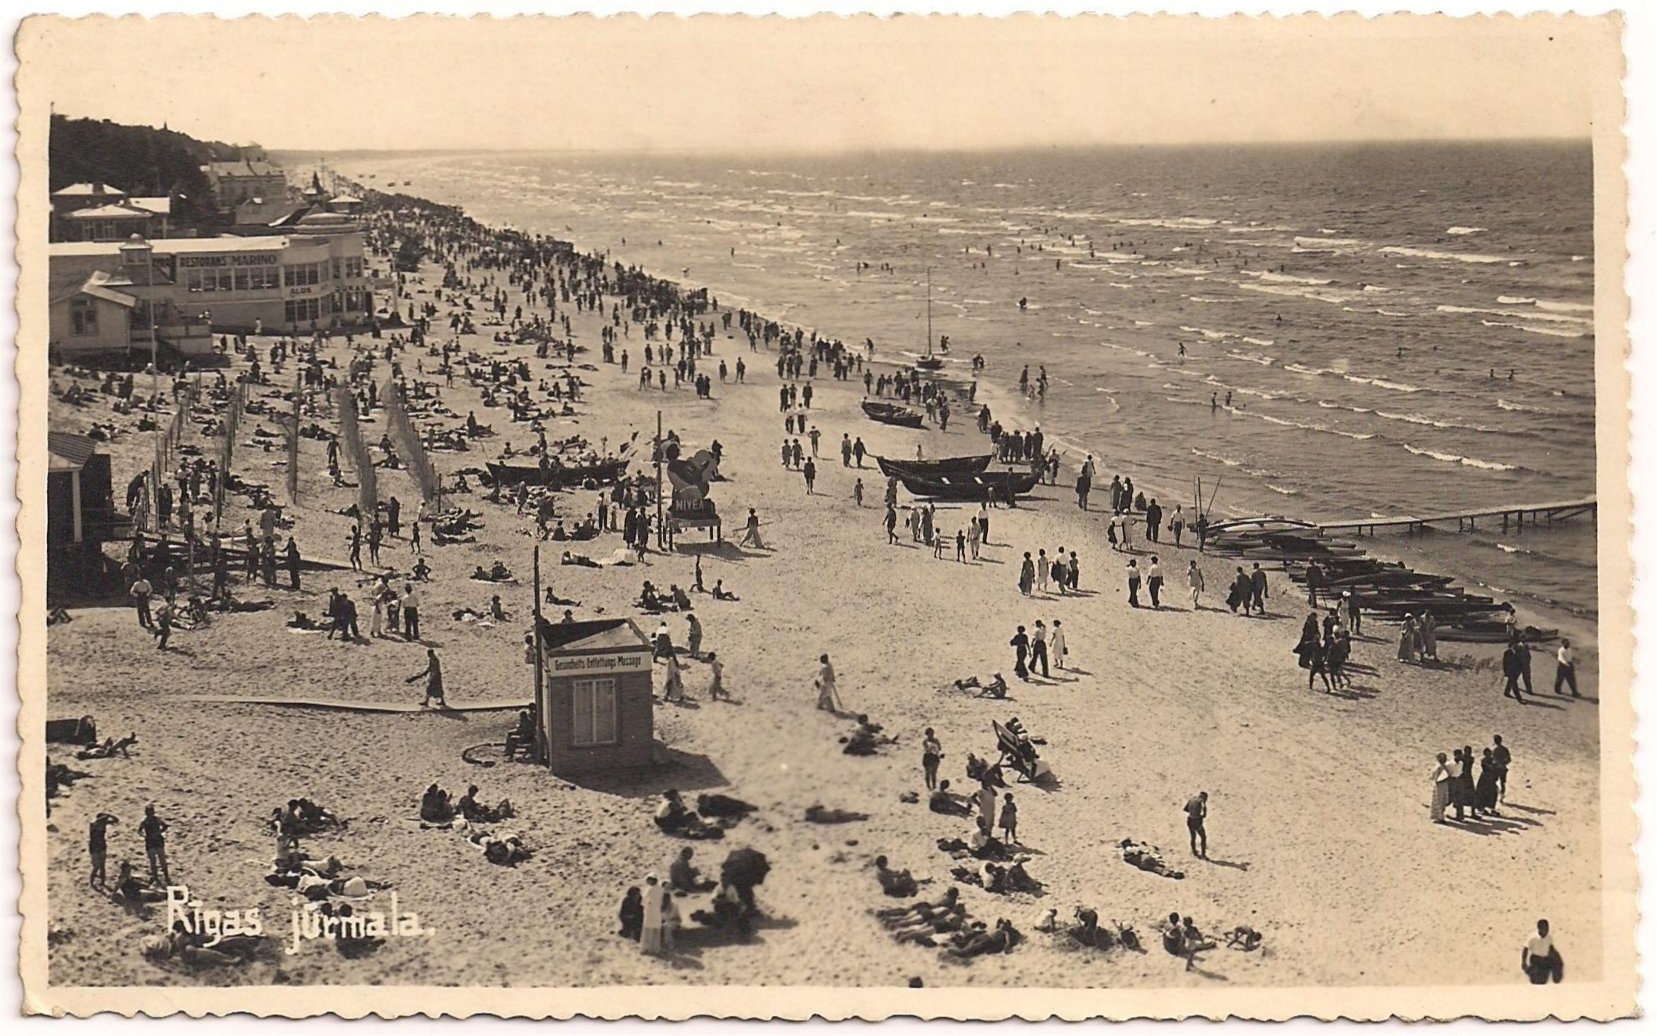 Majori was in the interwar period central to the spa-life of the Rigas beach. Here were the best hotels, sanatoria, boarding houses. There were also facilities such as bars with music. At the seaside were institutions with warm sea-water and bathing cabins.